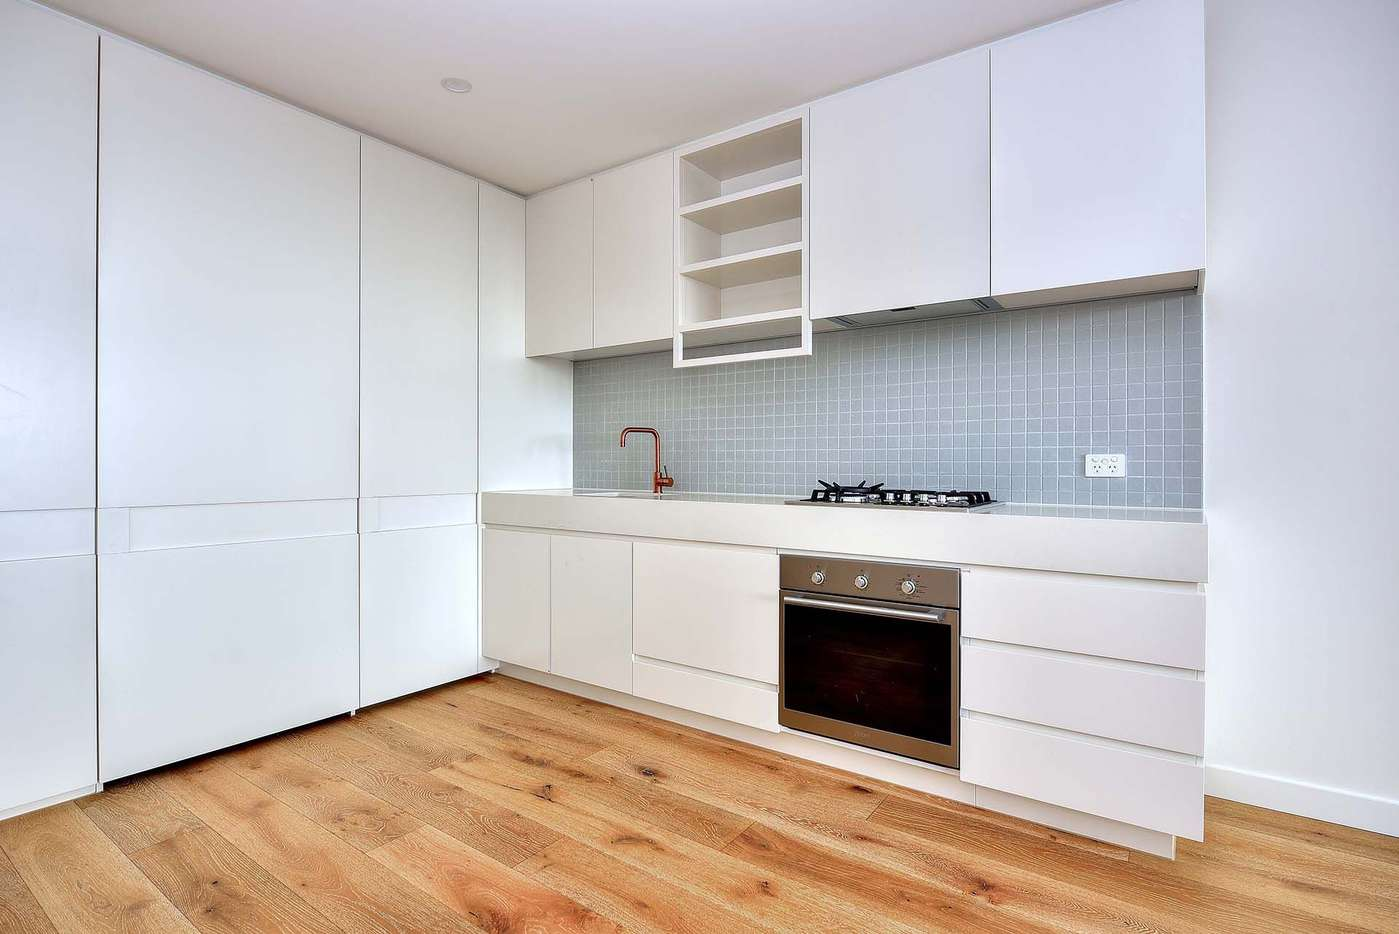 Main view of Homely apartment listing, 907/52-54 O'Sullivan Road, Glen Waverley, VIC 3150